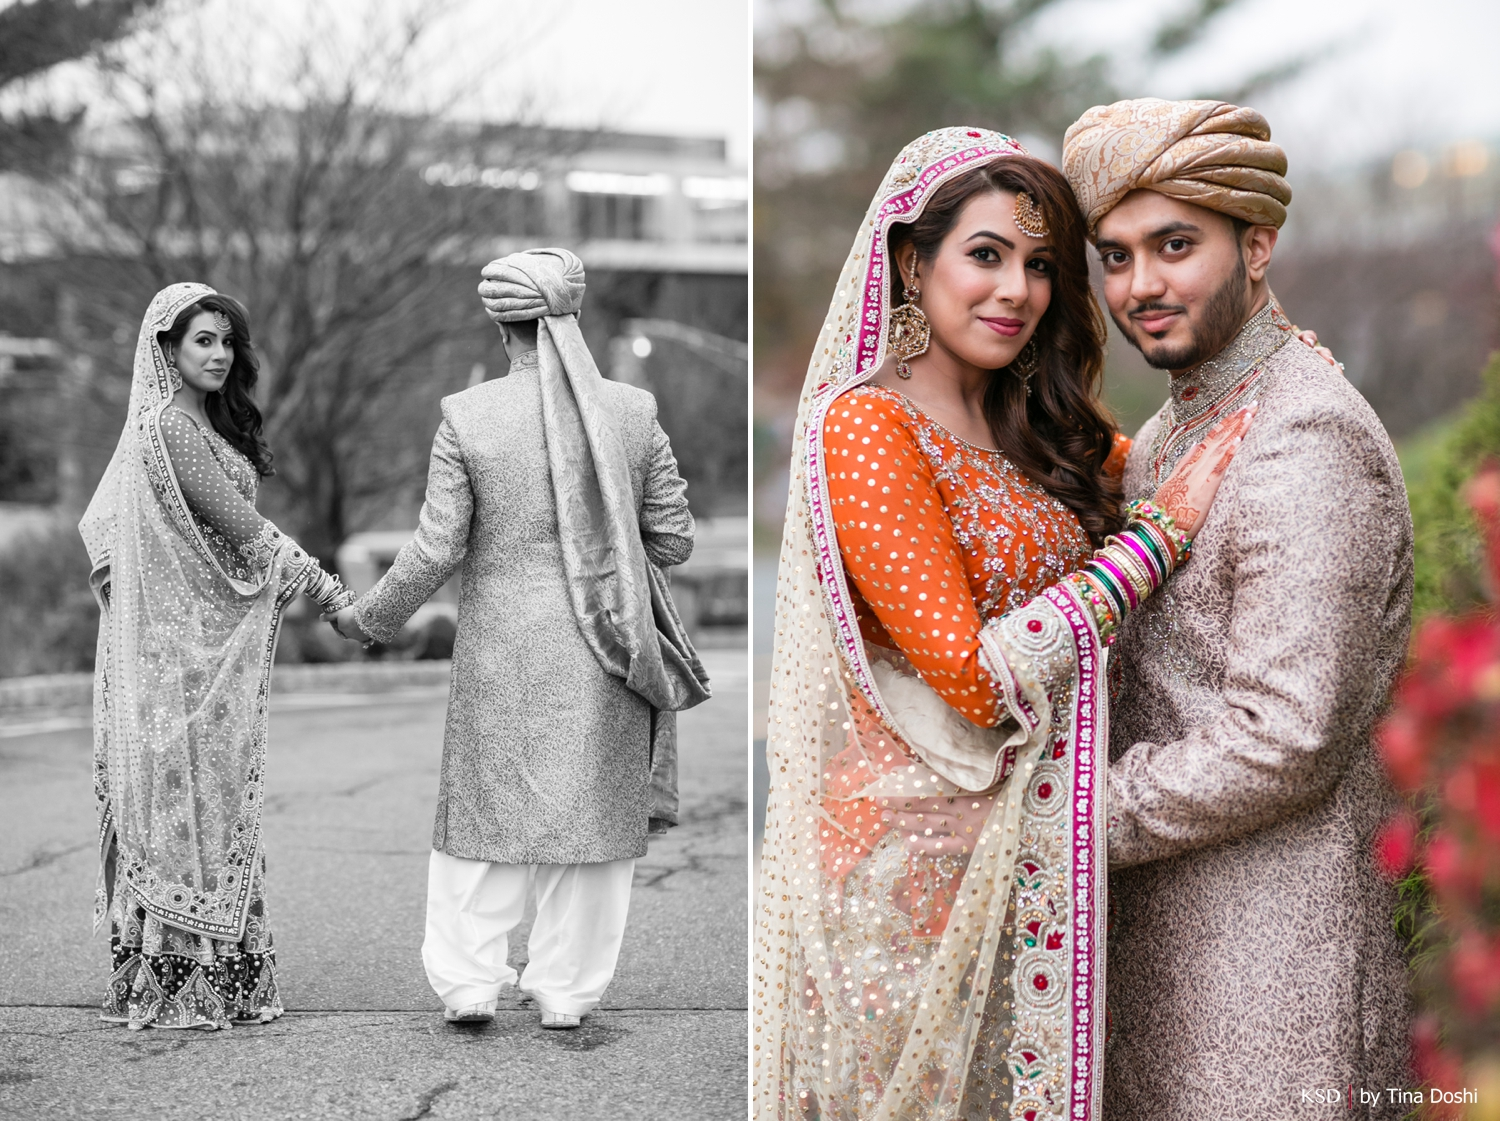 nj_south_asian_wedding_0024